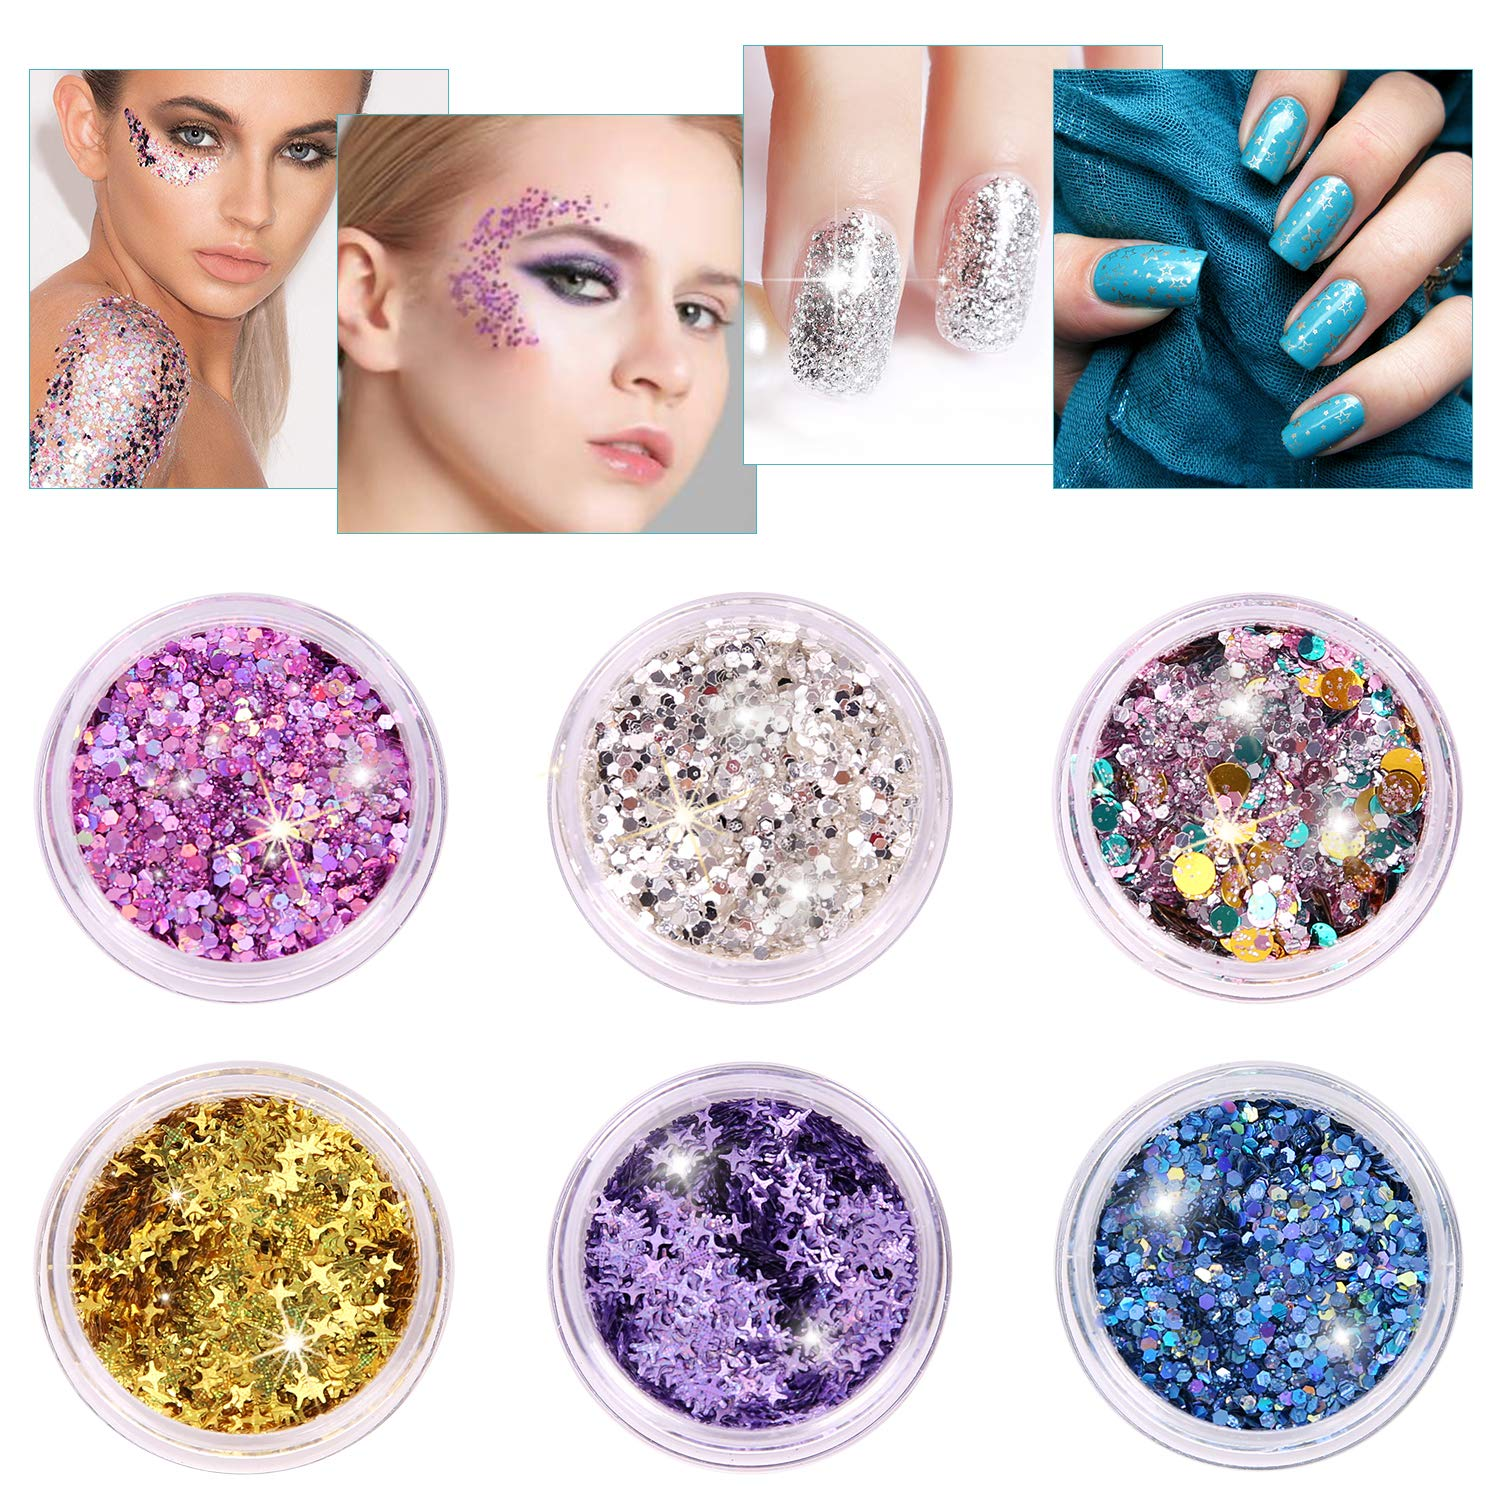 Kitymate Gesicht Glitter Chunky Glitter für Nägel und Körper, Cosmetic Make Up Glitter Paillette Music Festival Masquerade Halloween Party Christmas Ball (6 Farben)